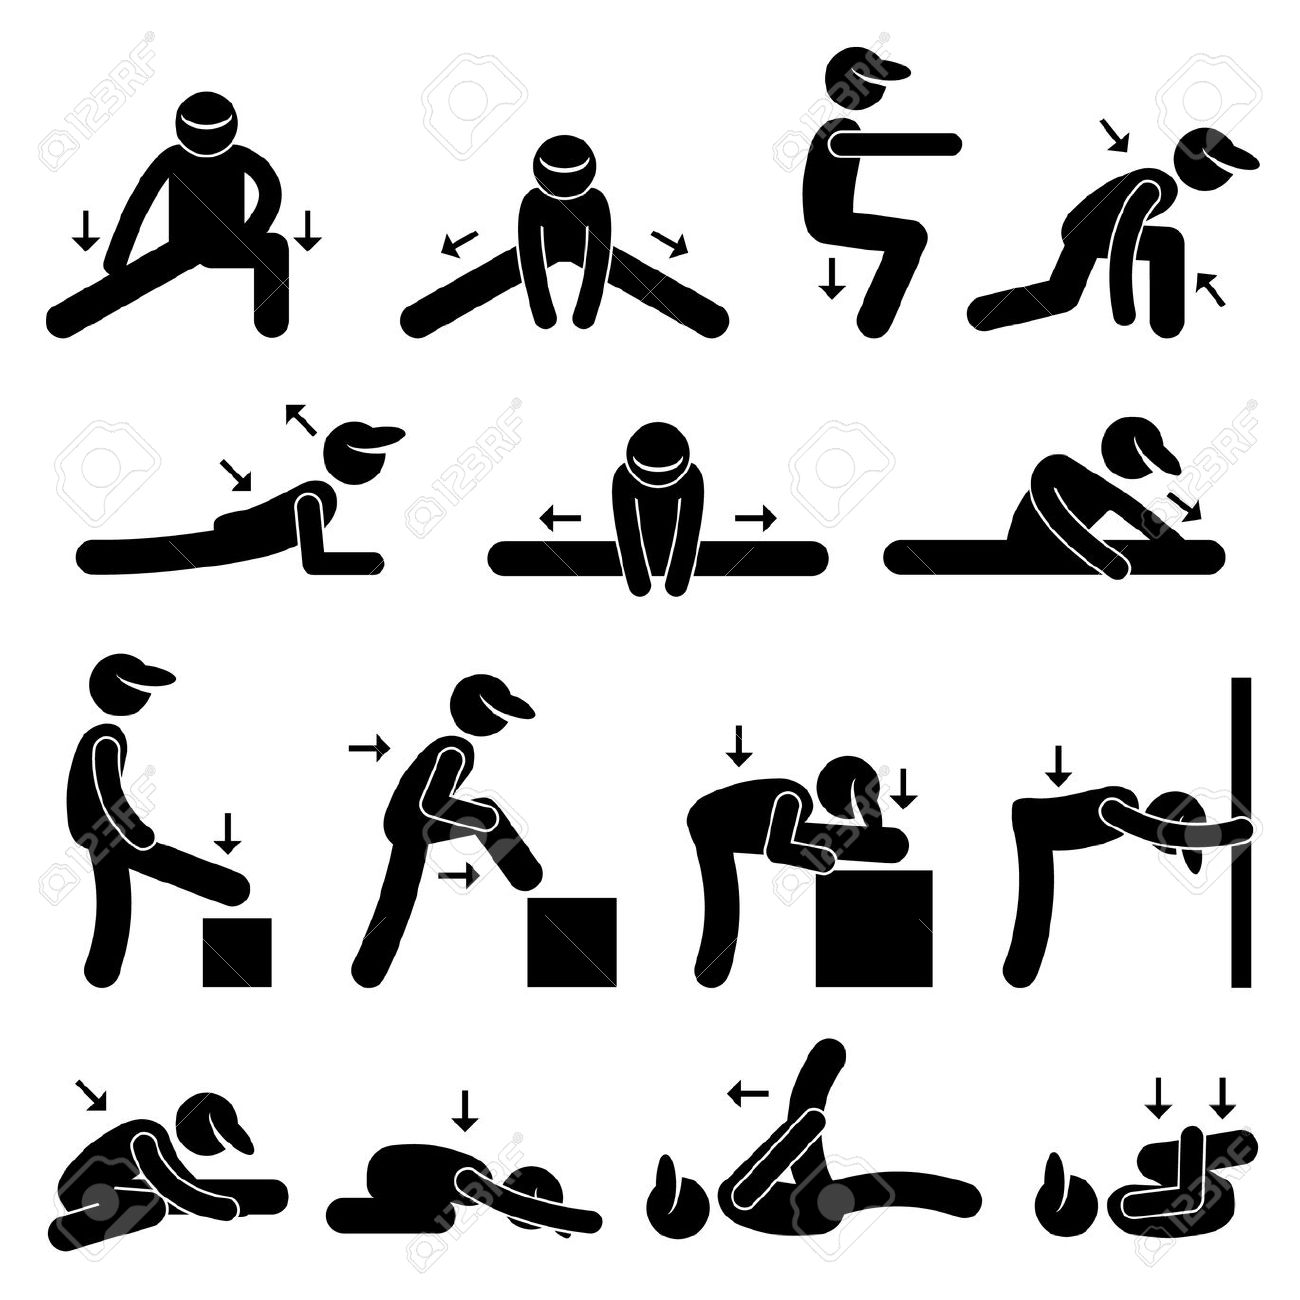 8,656 Stretching Exercises Stock Illustrations, Cliparts And.